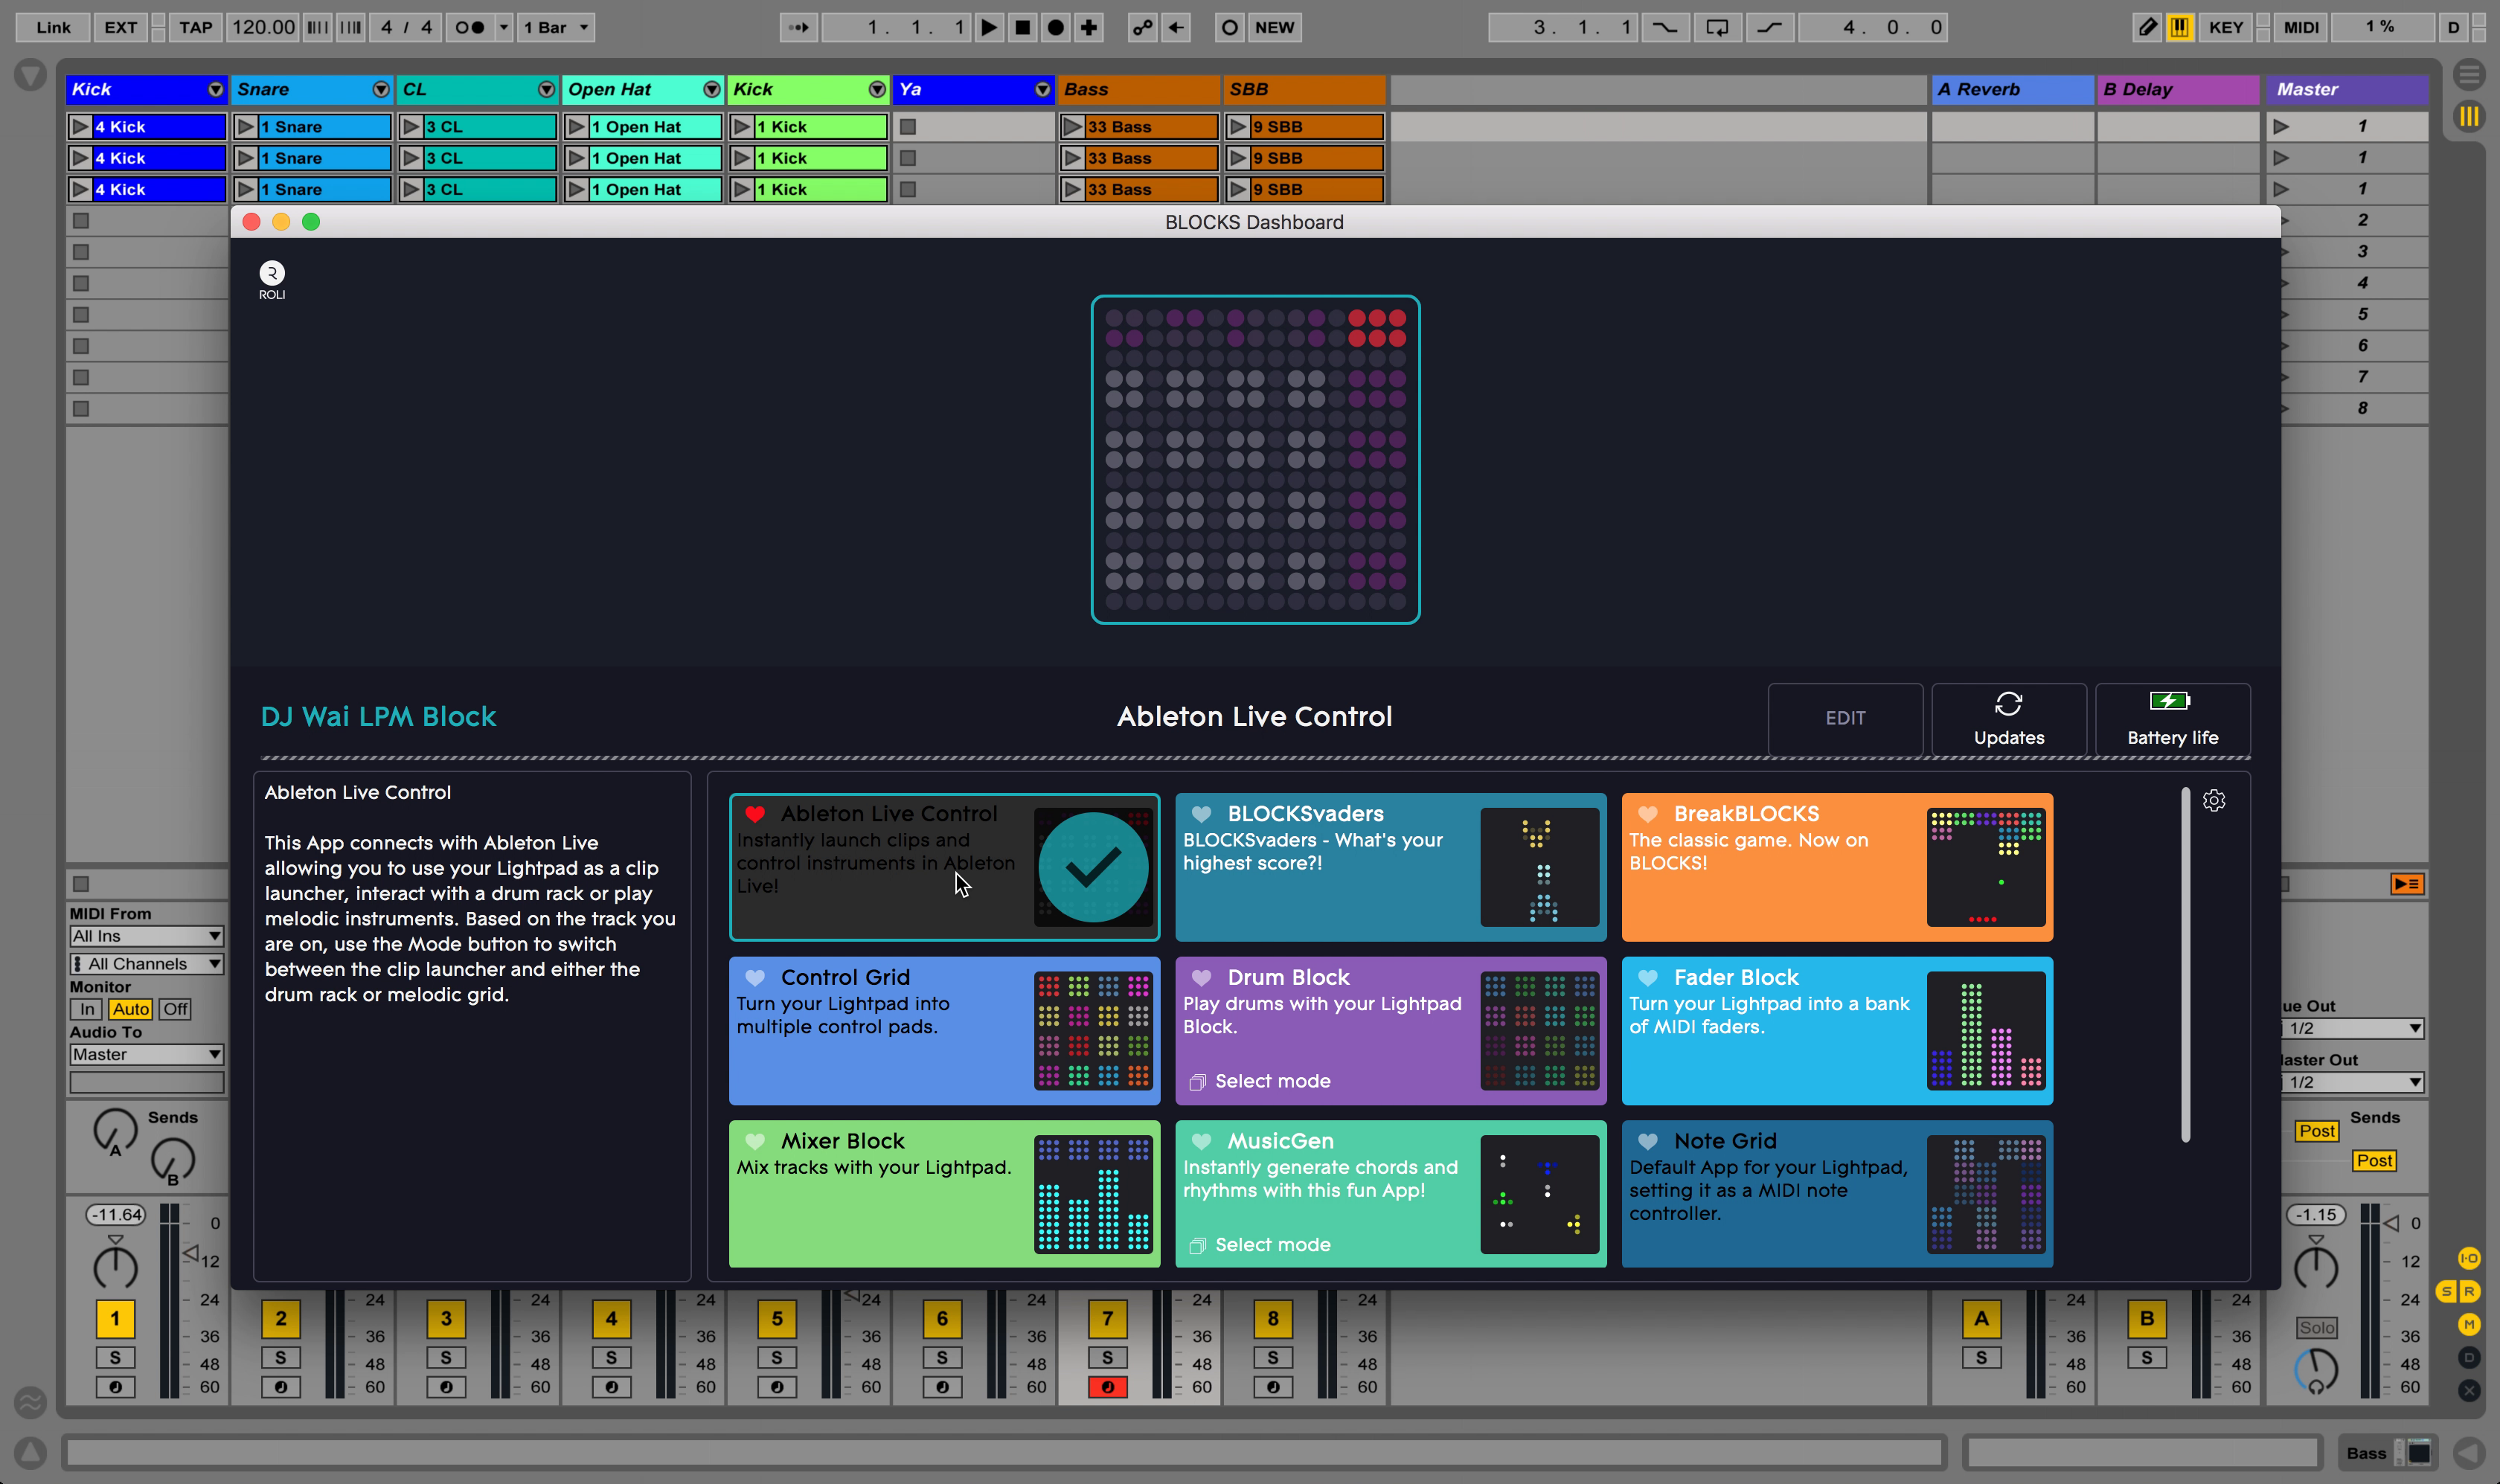 BLOCKS Dashboard with Ableton Live